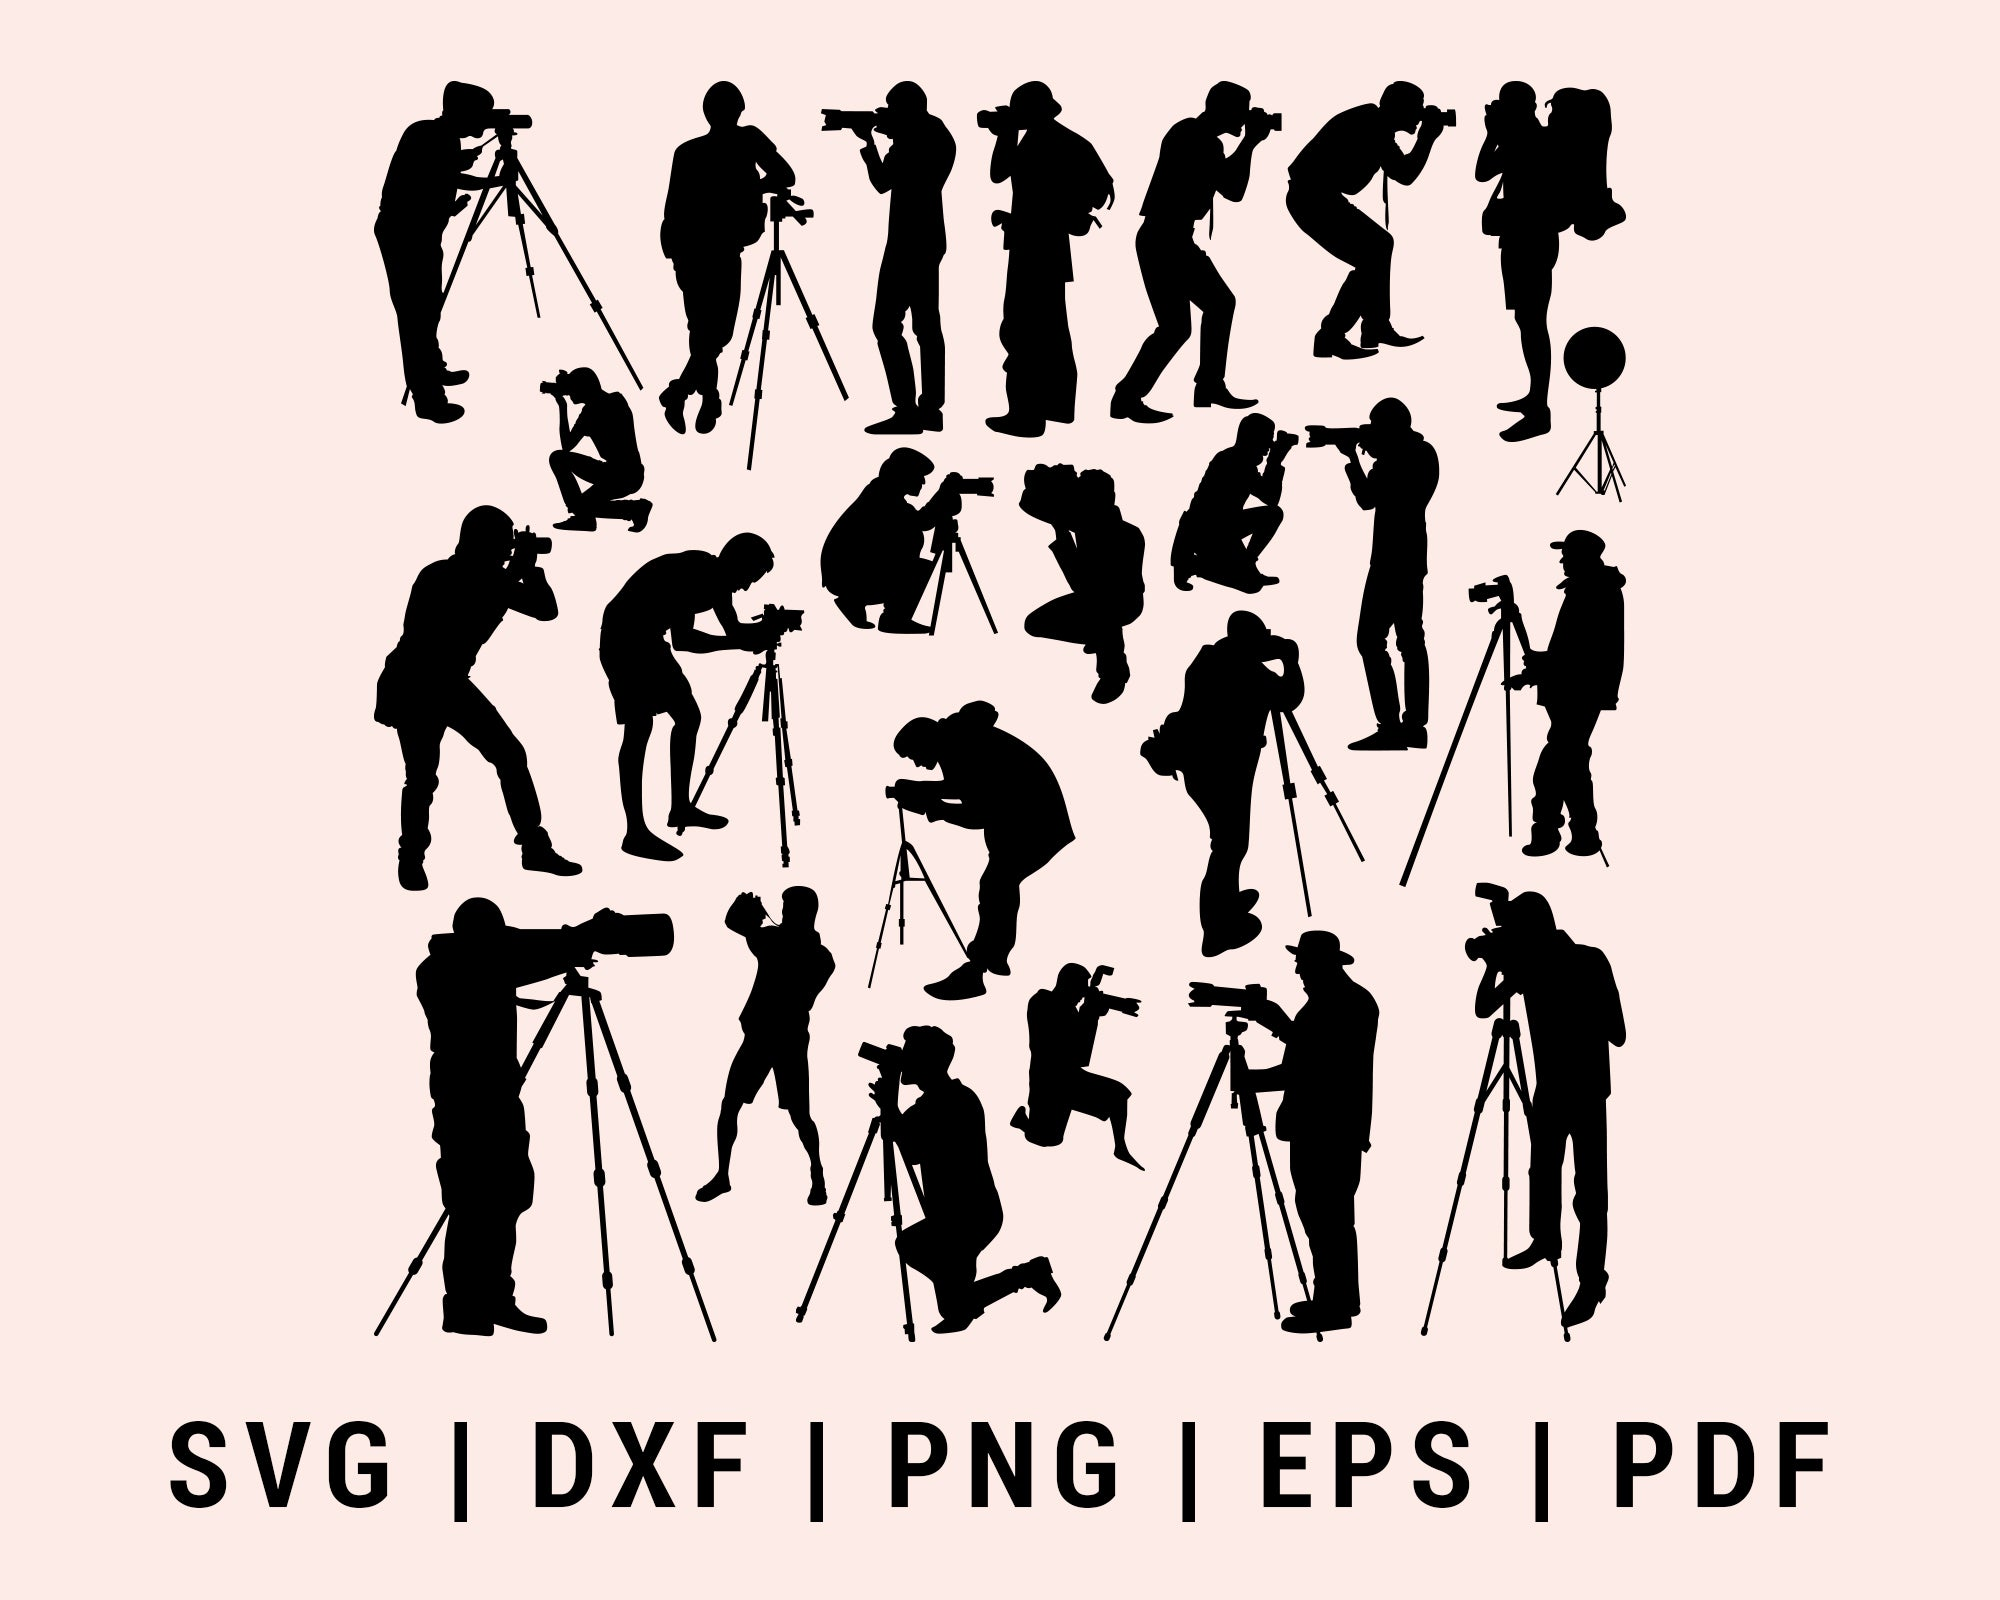 Photographer Cut File For Cricut Bundle SVG, DXF, PNG, EPS, PDF Silhouette Printable Files